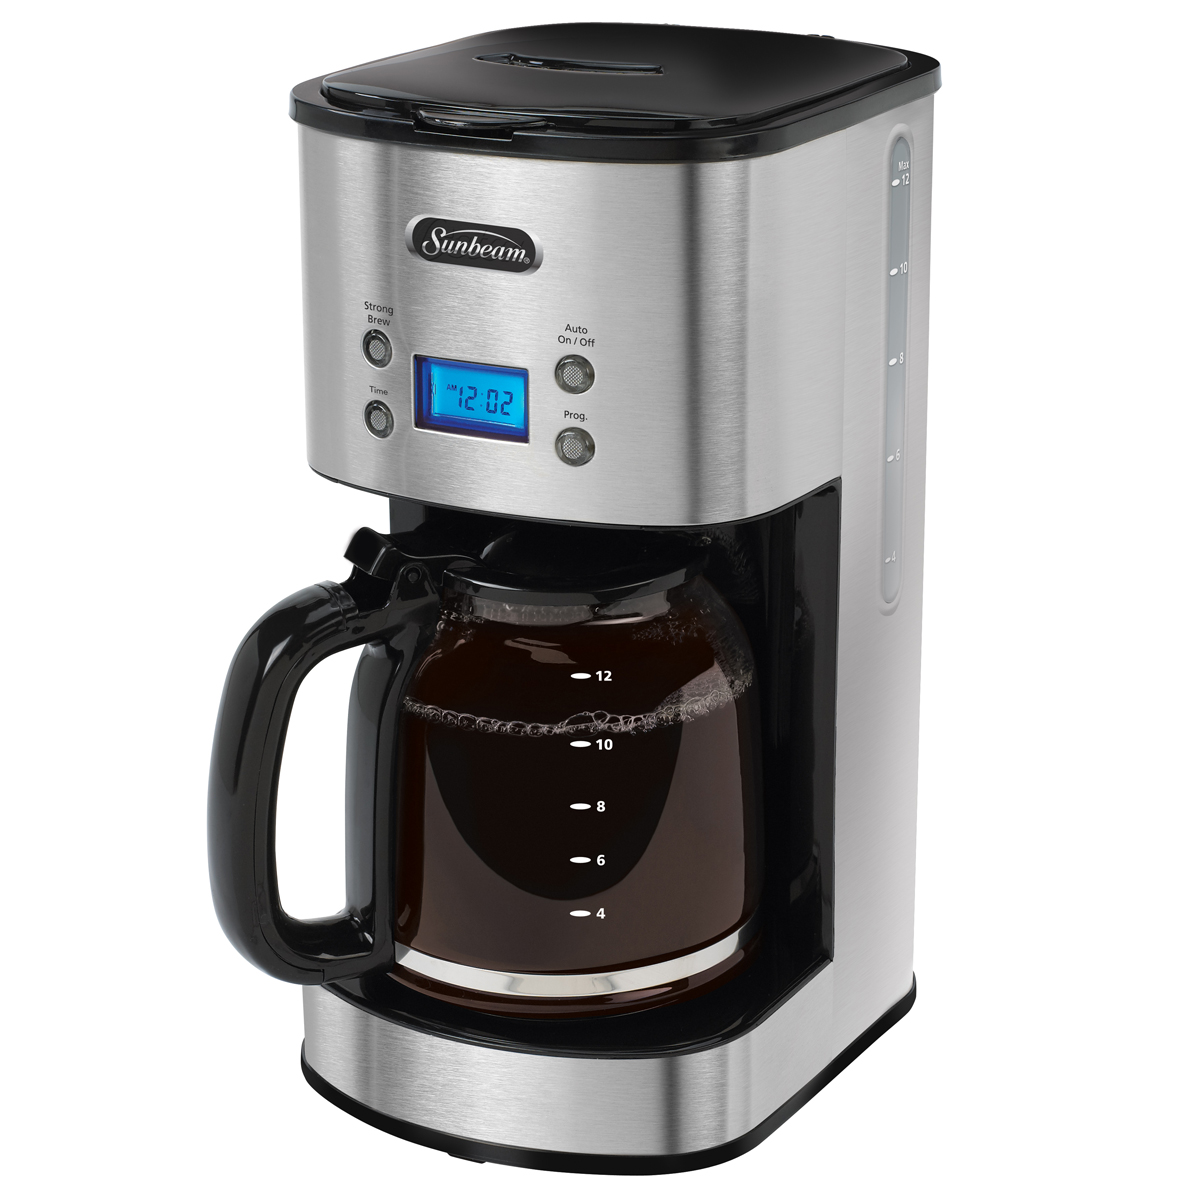 Coffee Maker With Metal Parts : Sunbeam 12-Cup Programmable Coffeemaker, Stainless Steel BVSBCM0001-033 Sunbeam Canada